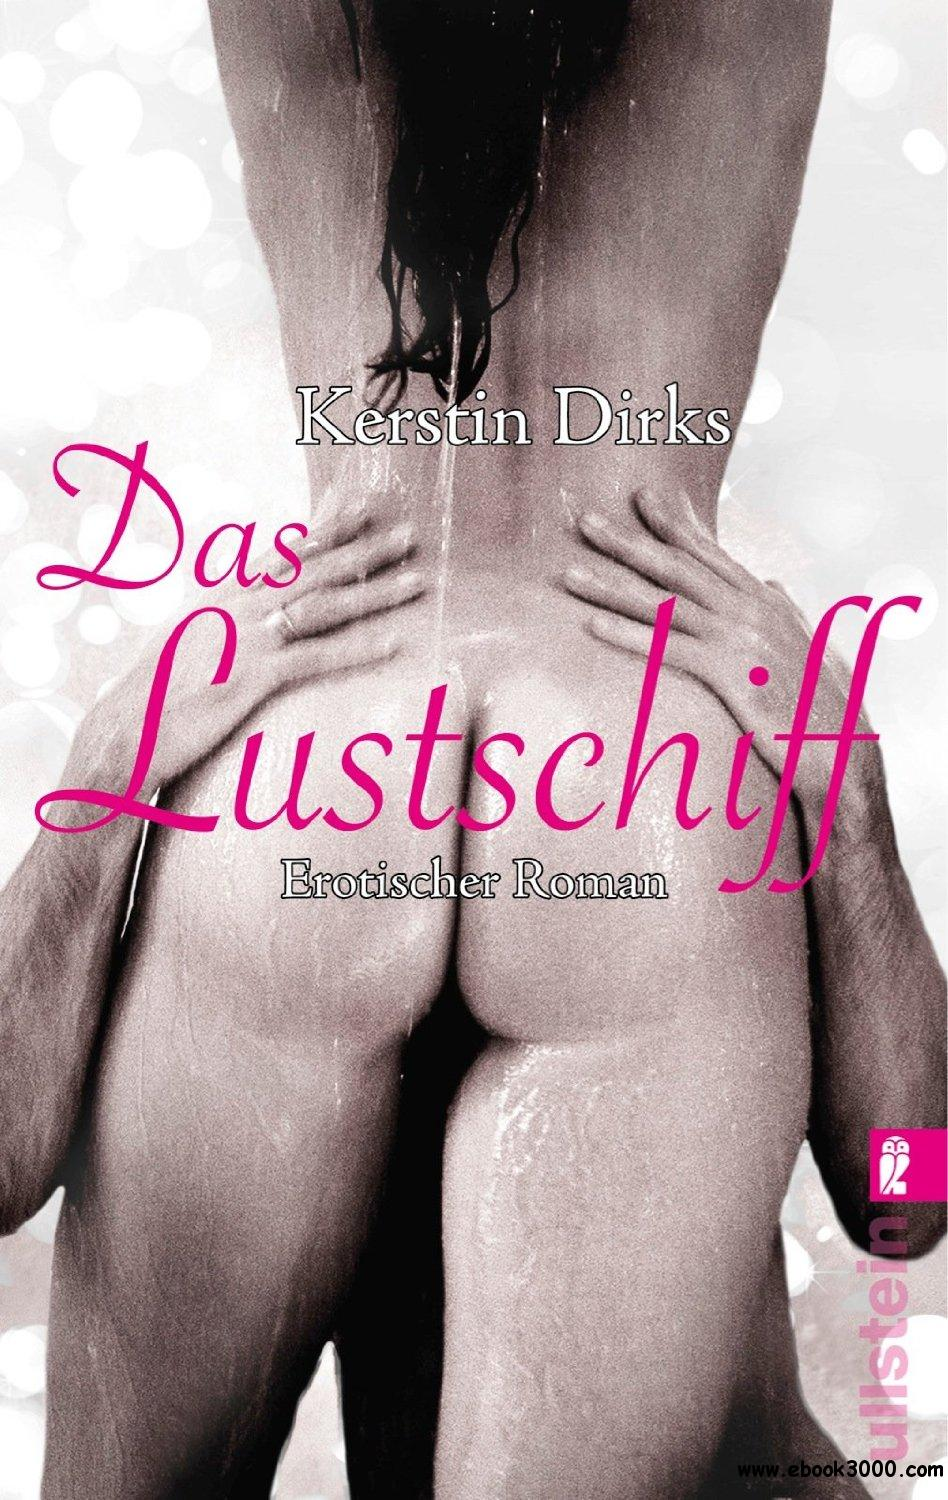 Kerstin Dirks - Das Lustschiff free download